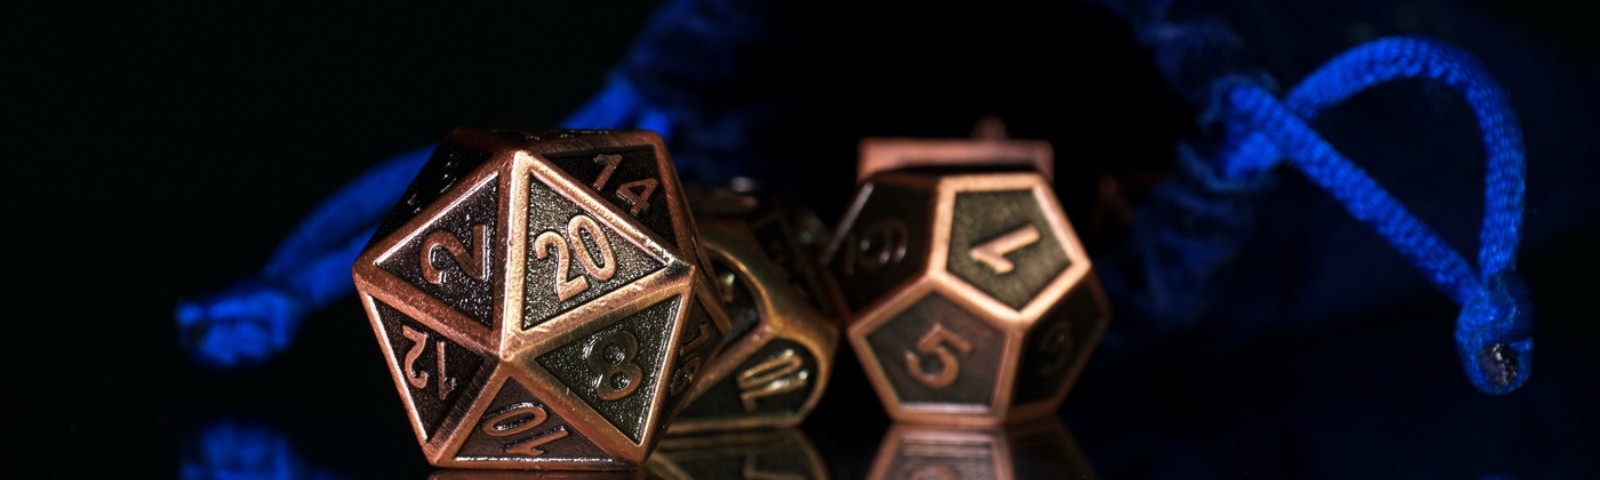 A copper d20 and d12 against a dark background.